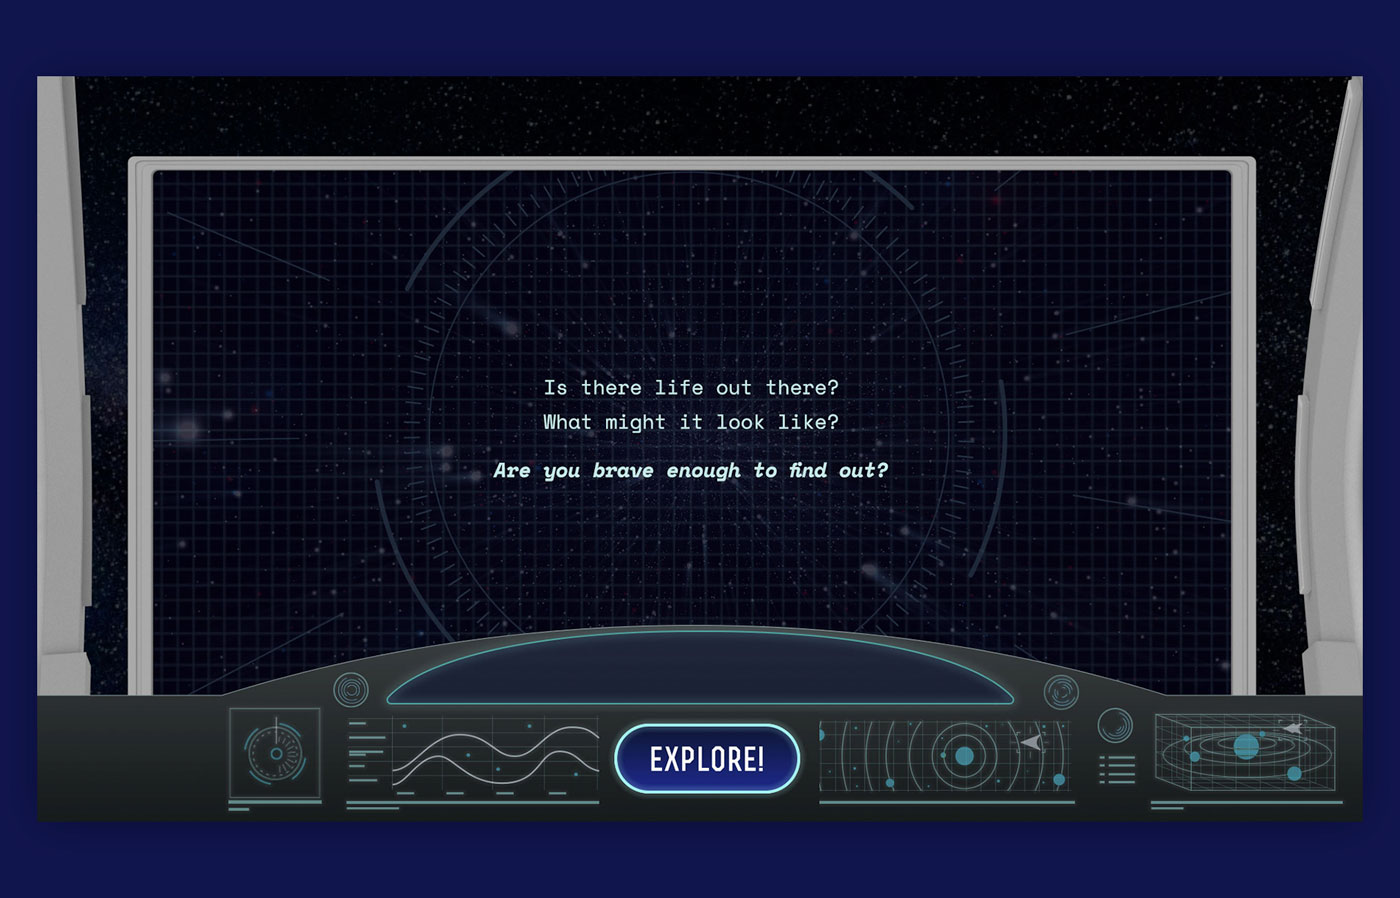 A UI design set up so it looks like you are sitting behind the dashboard of a space ship and you are exploring space.